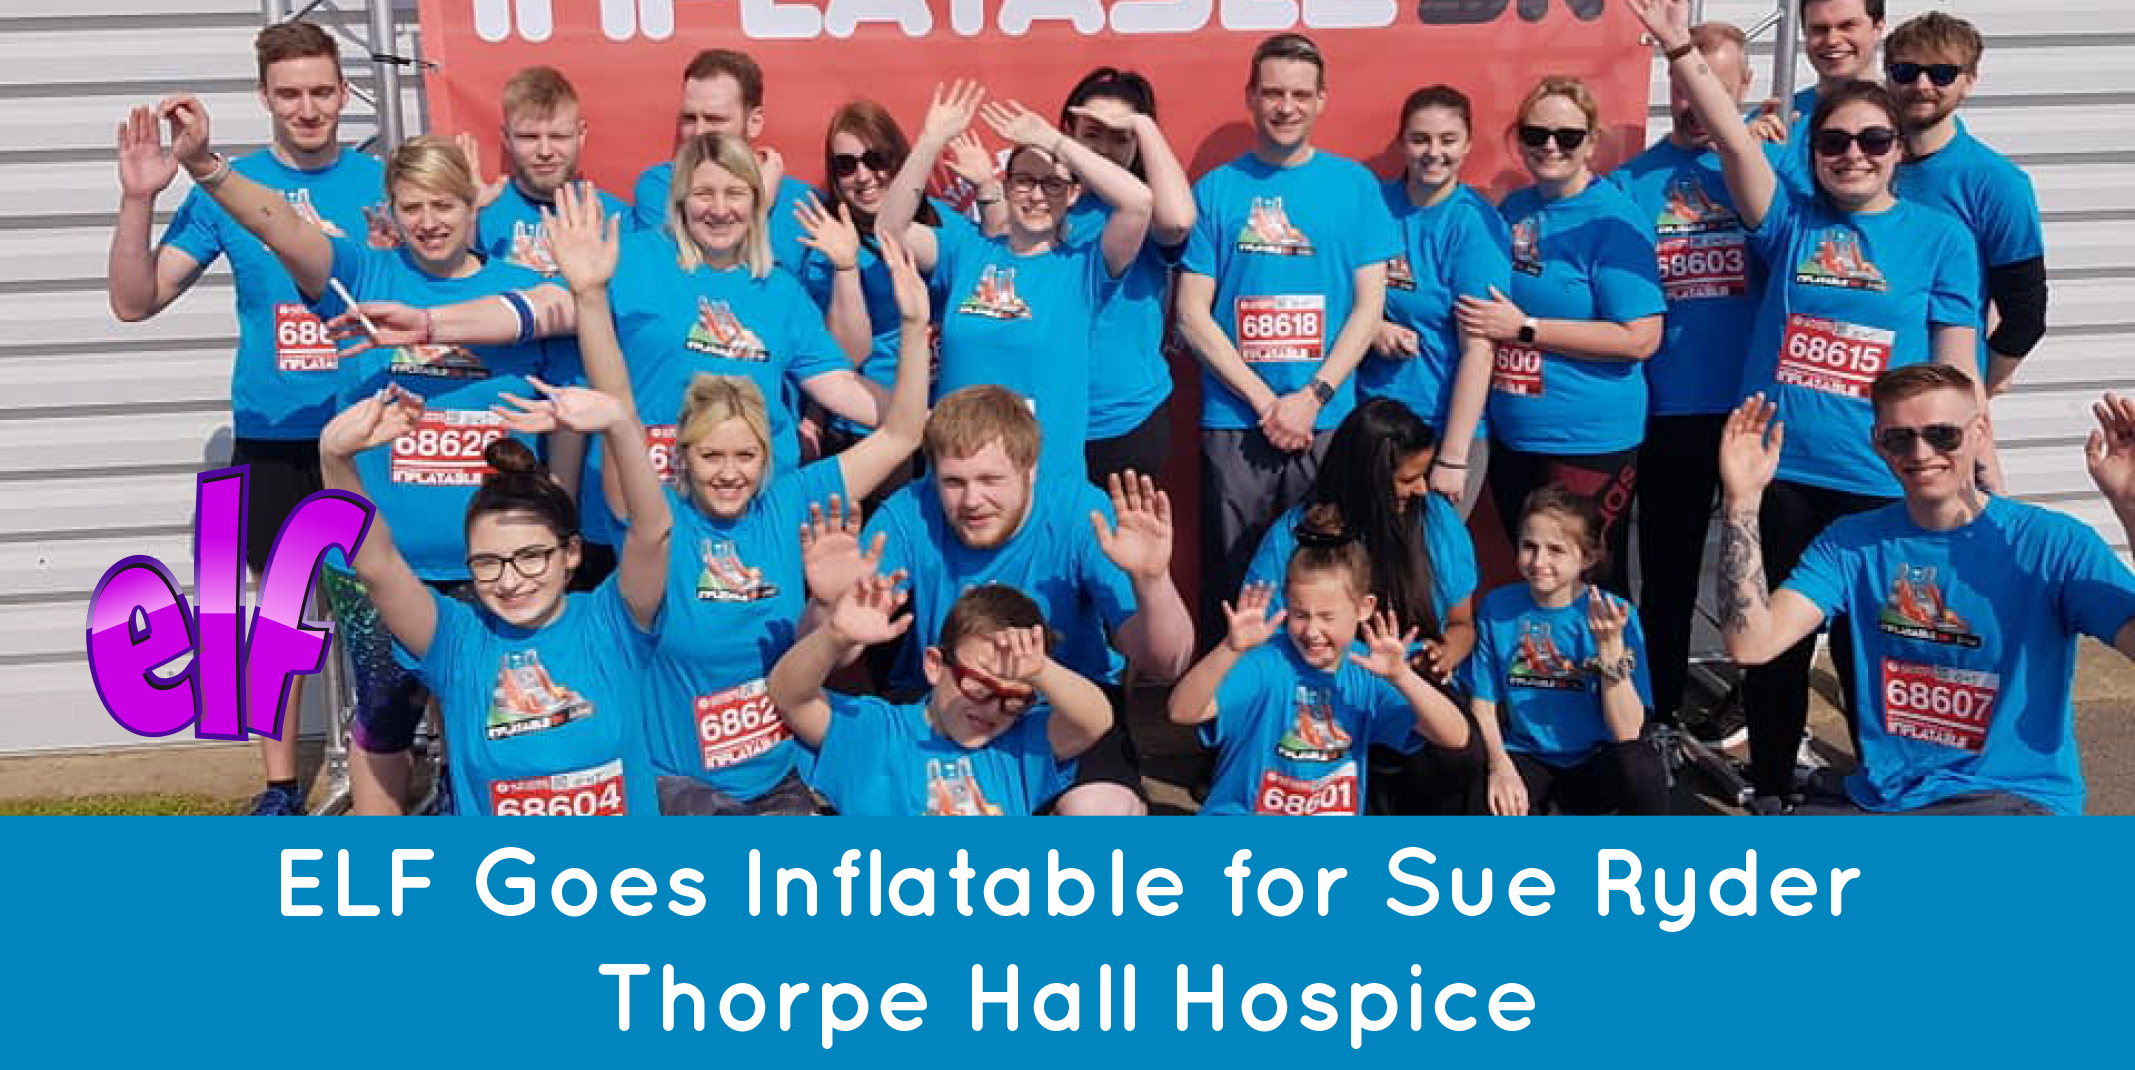 ELF Goes Inflatable for Sue Ryder Thorpe Hall Hospice